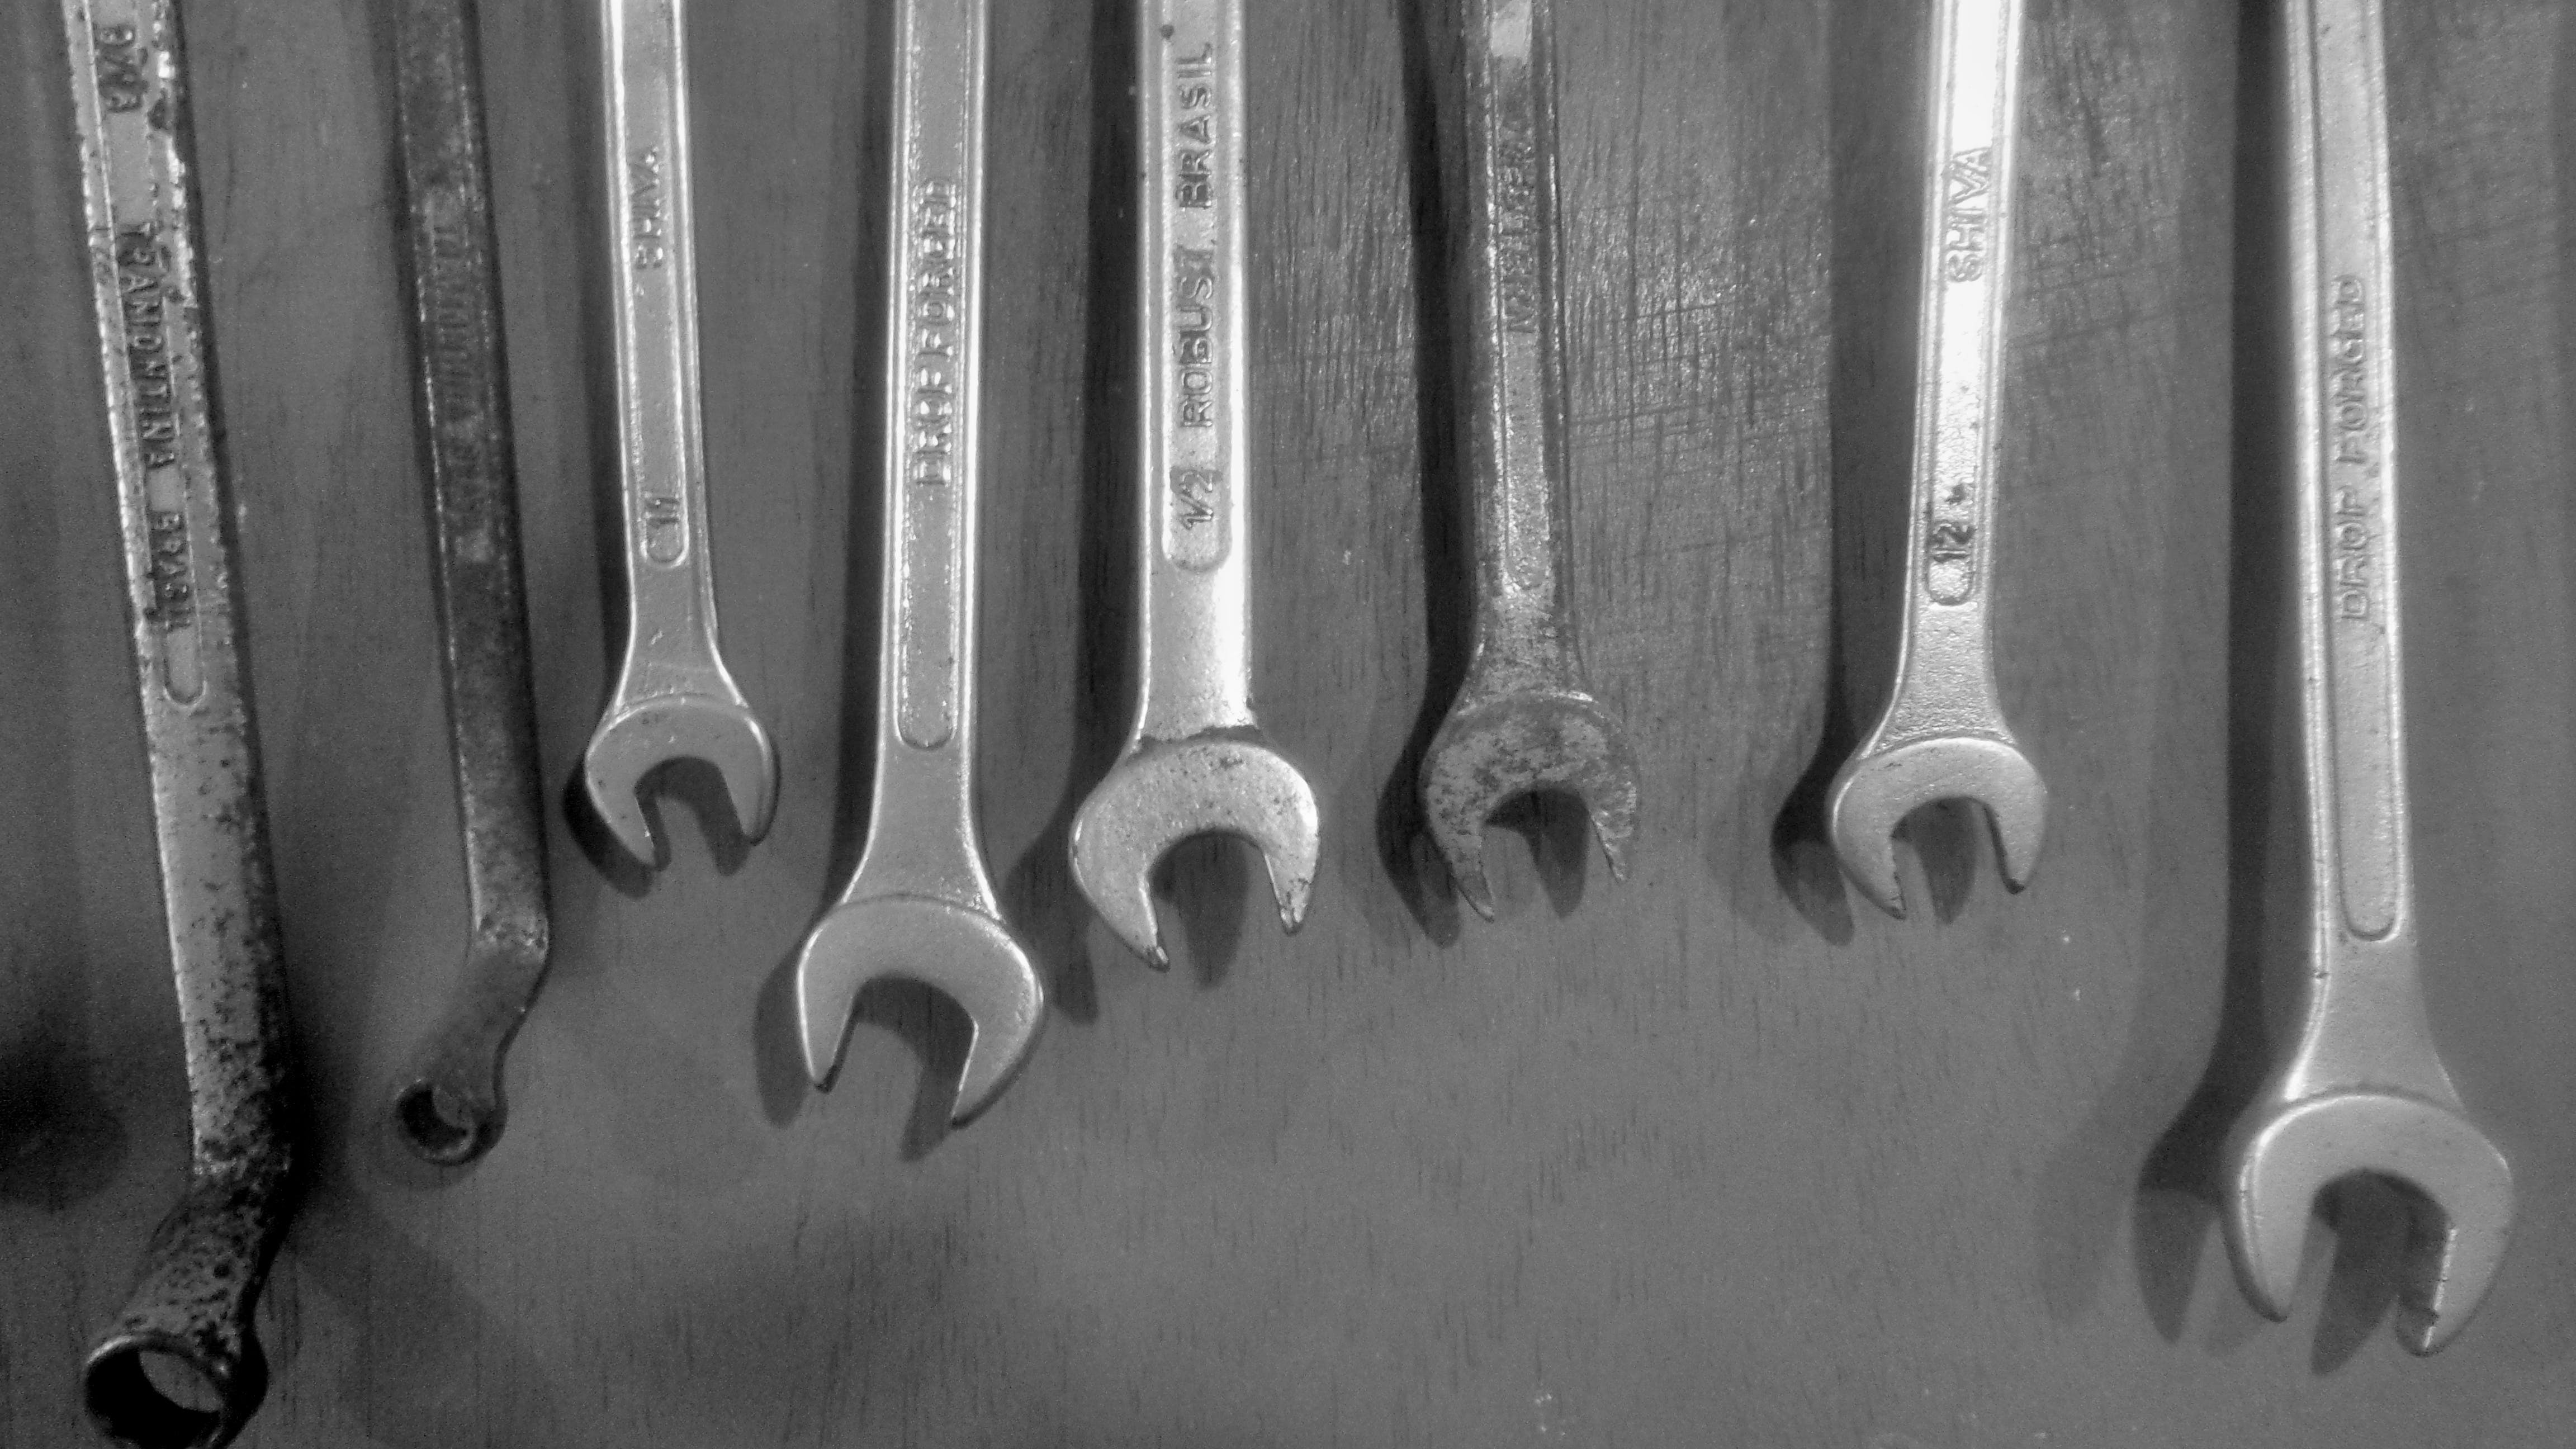 Free stock photo of manual work, tools, workbench, workshop